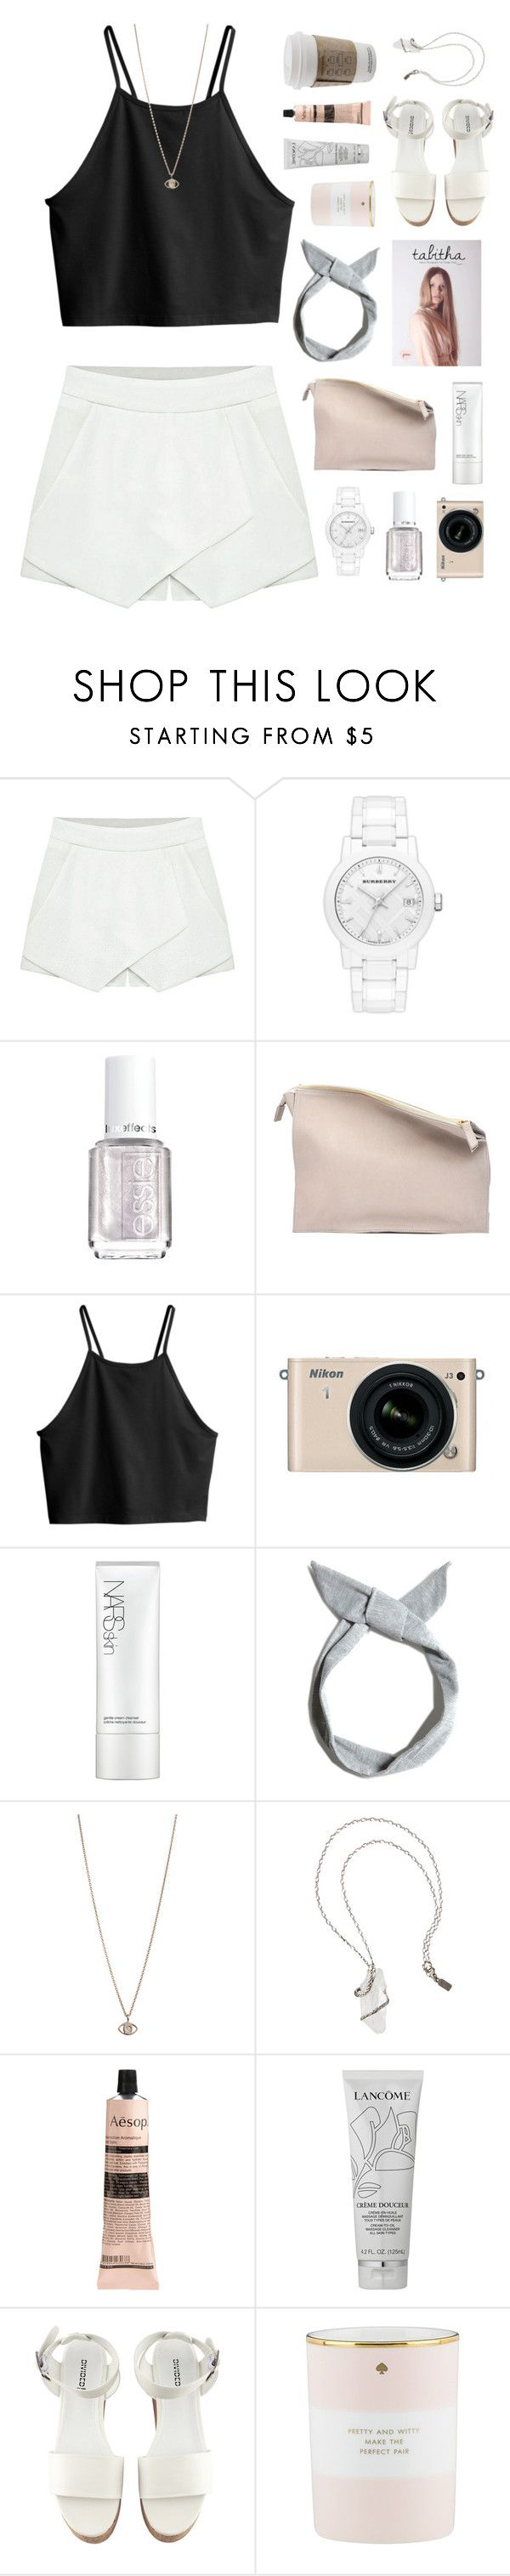 """""""evil eye"""" by le-rosie ❤ liked on Polyvore featuring Burberry, Essie, Sabrina Zeng, H&M, Nikon, NARS Cosmetics, Pull&Bear, Minor Obsessions, Pamela Love and Aesop"""